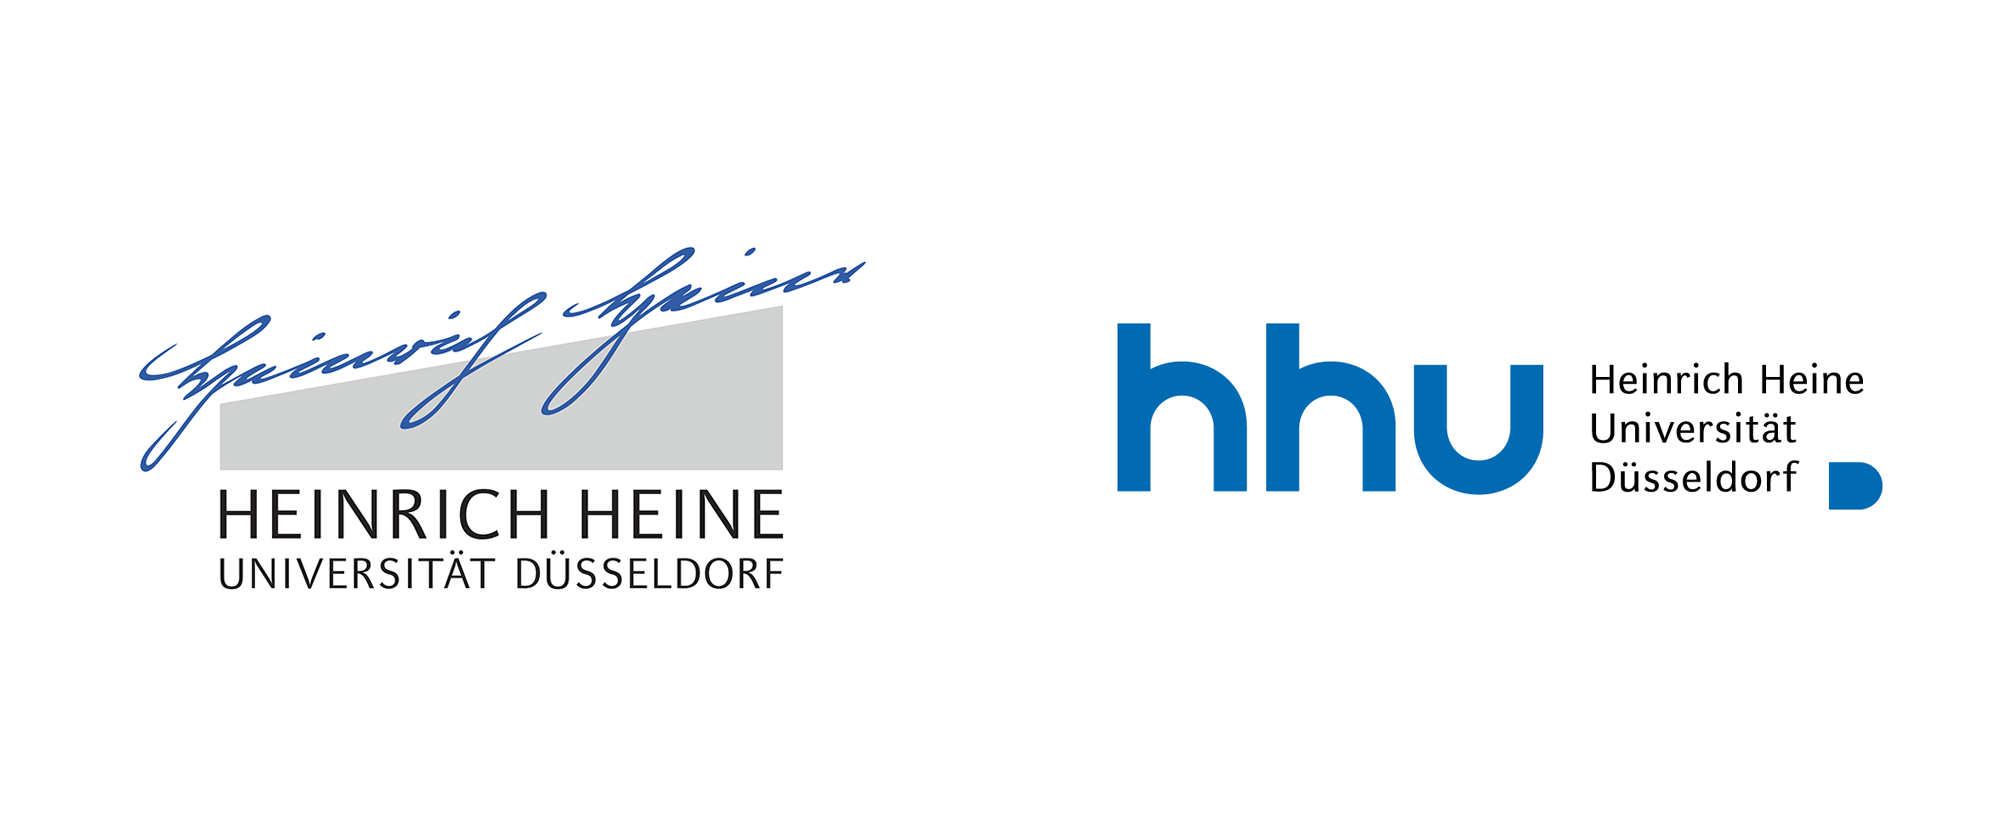 New Logo for Heinrich-Heine-University Düsseldorf by Eggert Group